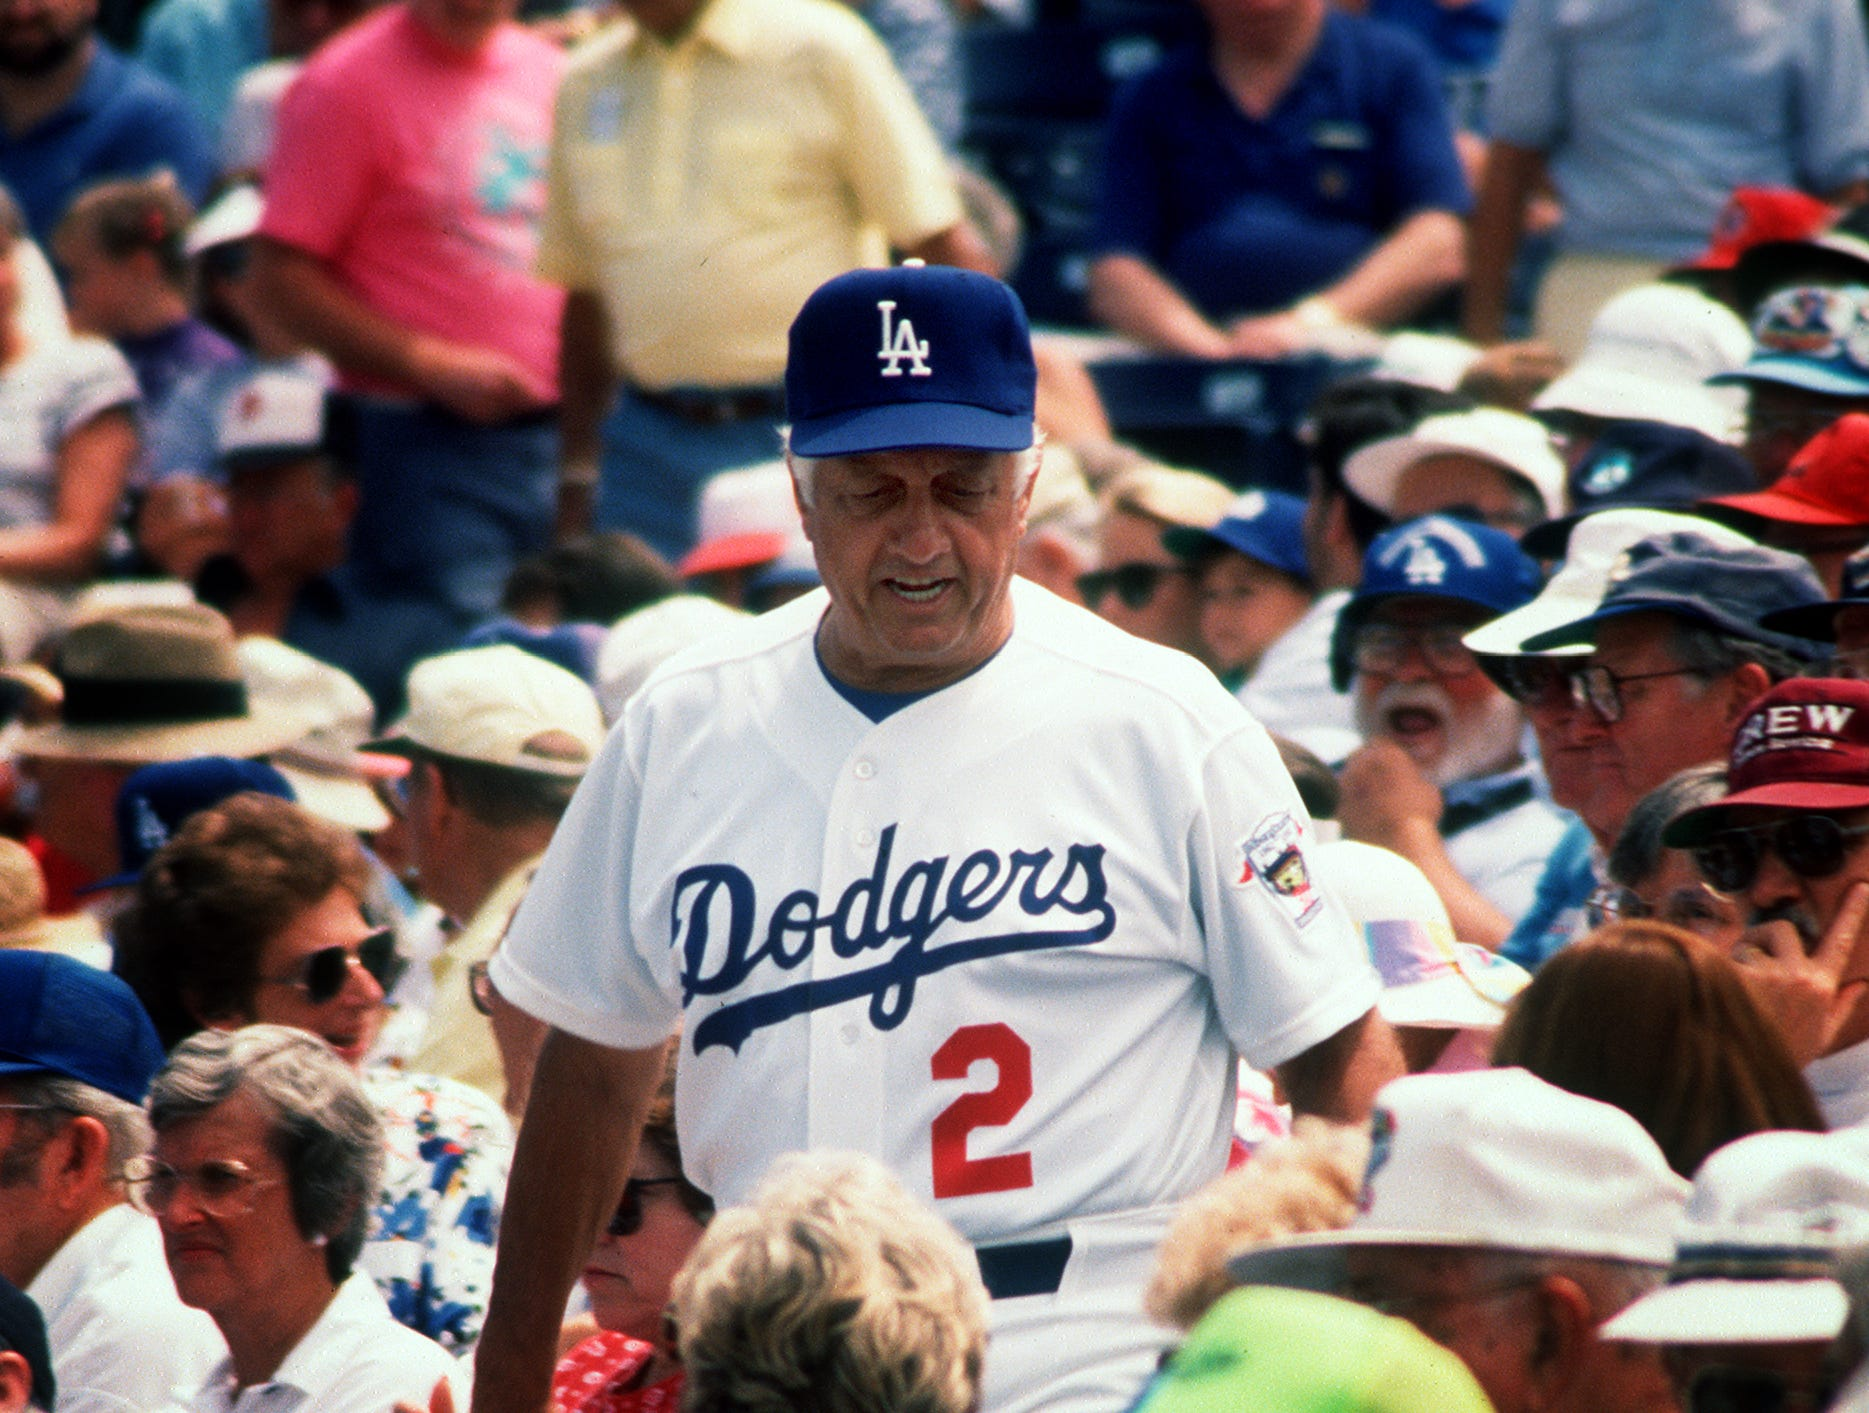 Los Angeles Dodgers manager Tommy Lasorda walks through the stands in Holman Stadium at Dodgertown before the start of the last spring training game of the season in April 1992.